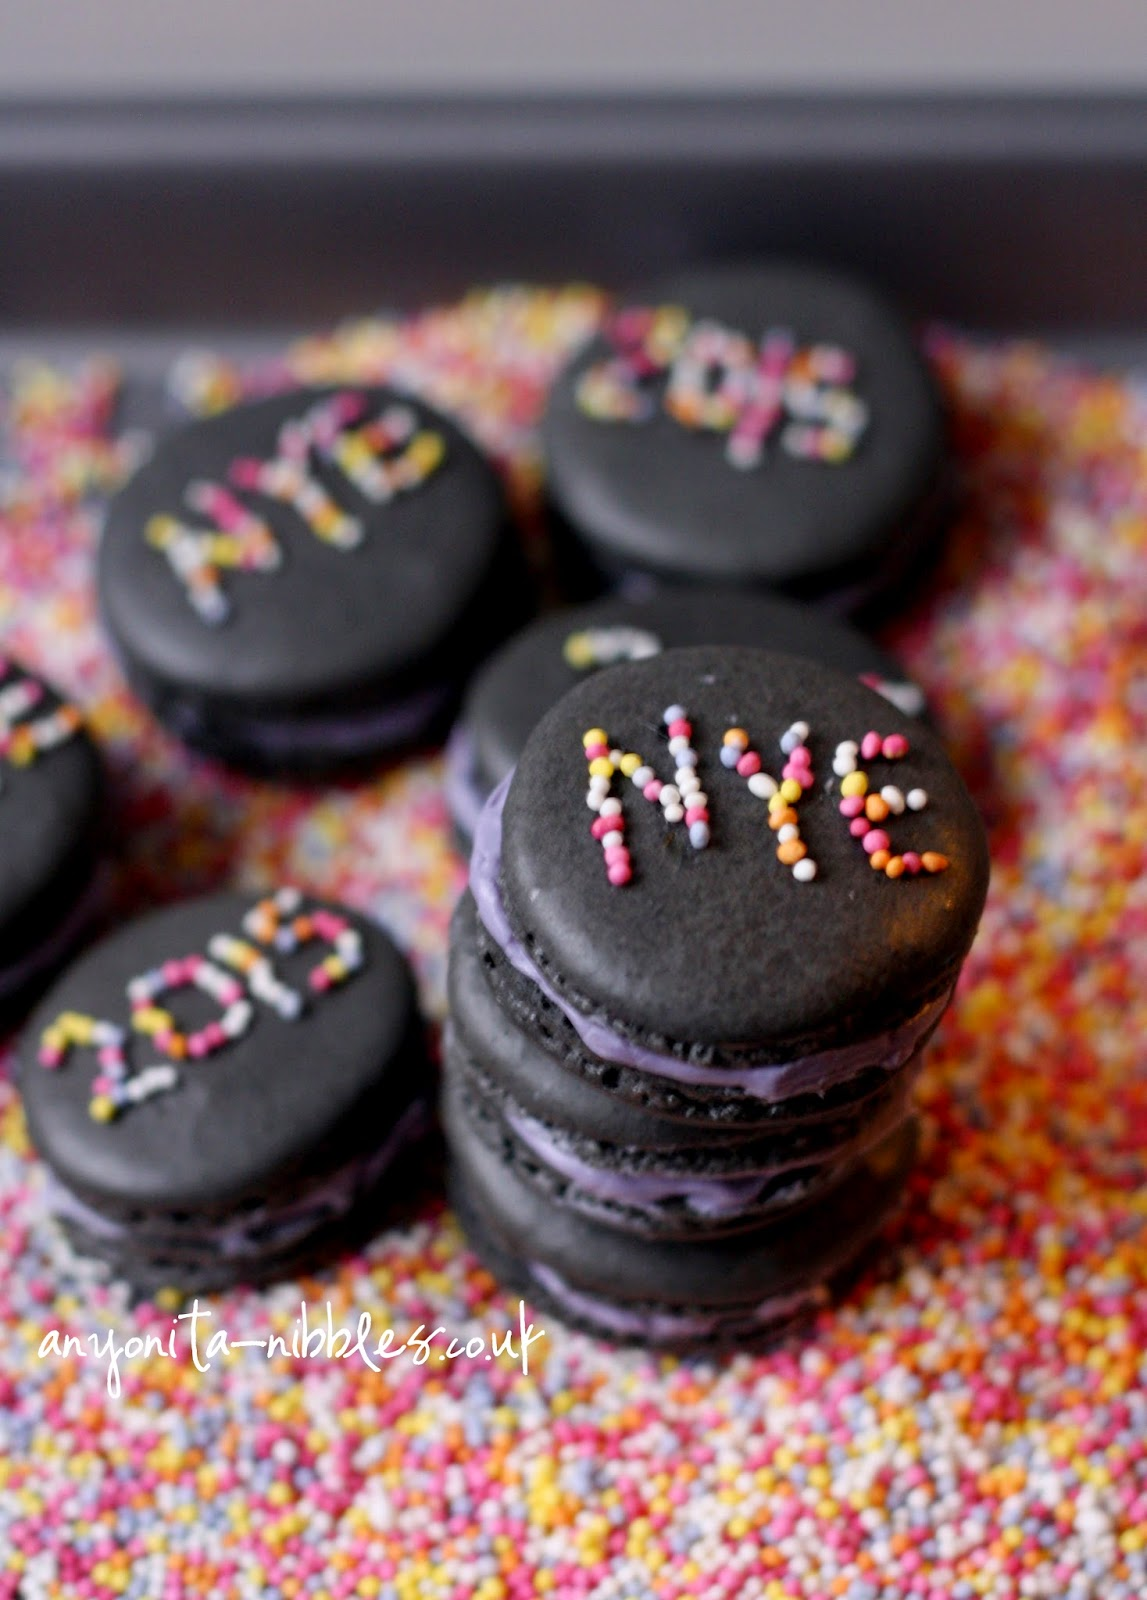 A stack of New Year's Eve macarons from Anyonita-nibbles.co.uk